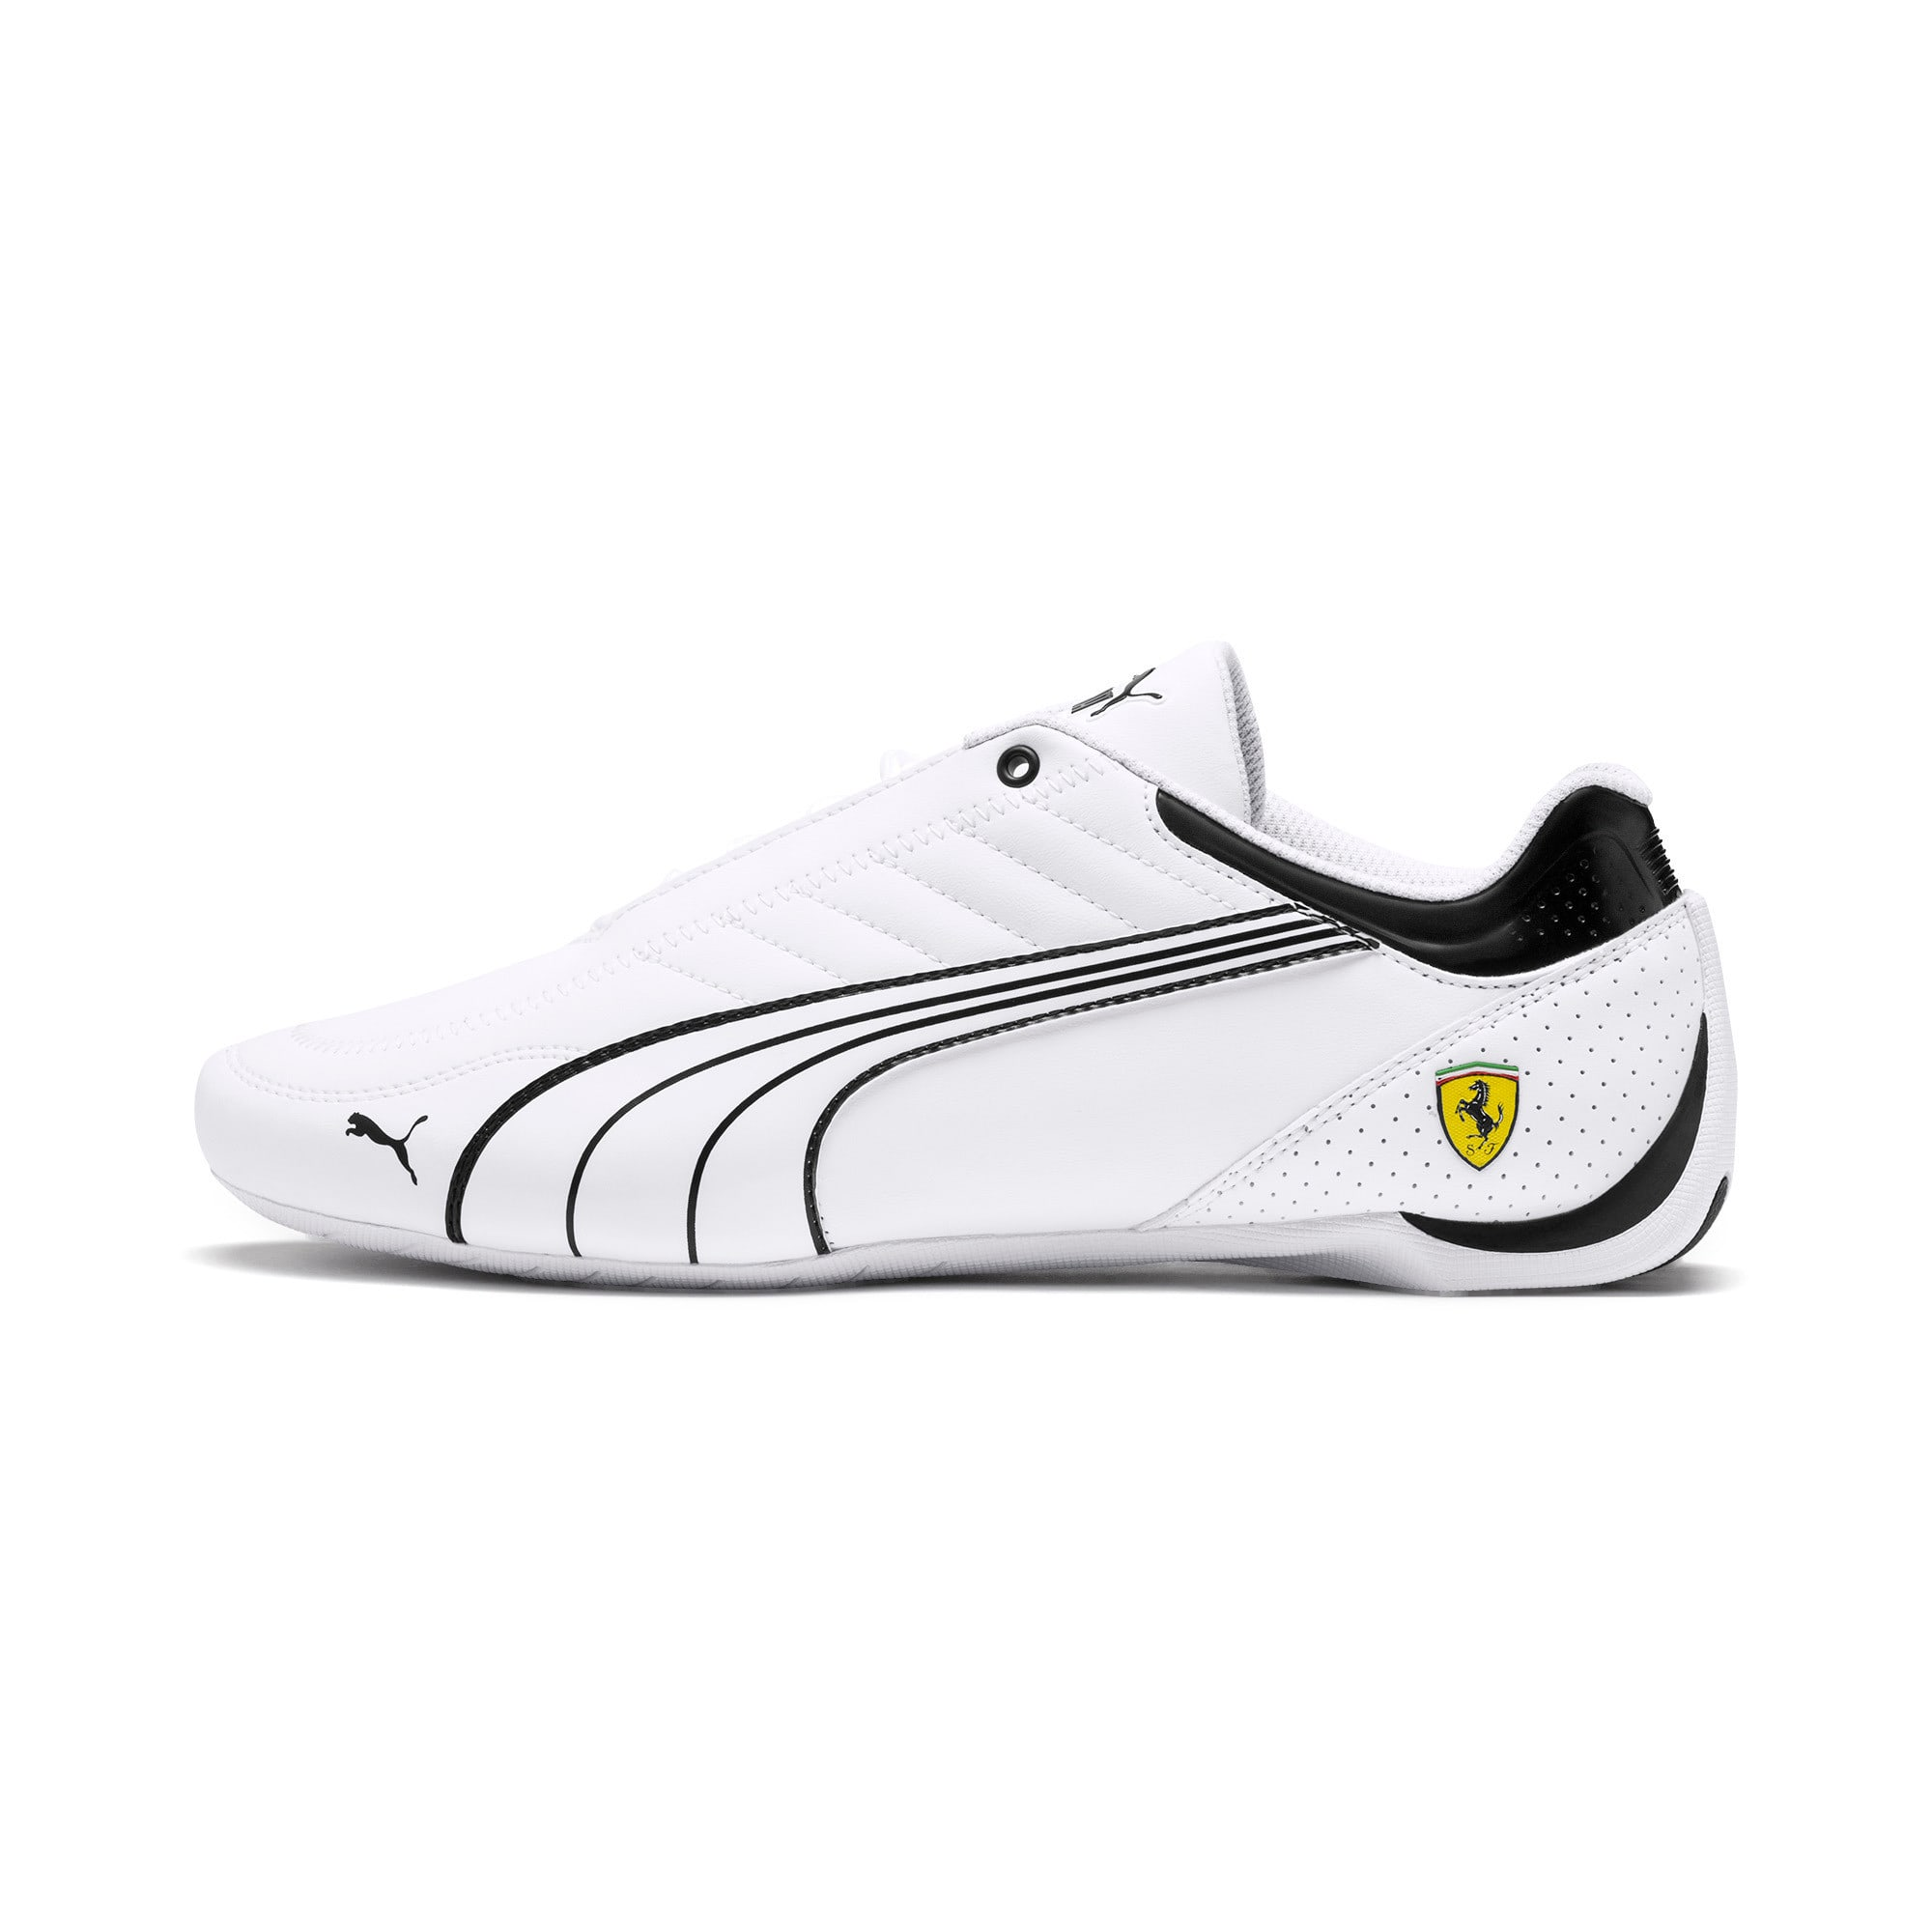 Thumbnail 1 of Scuderia Ferrari Future Kart Cat Shoes, White-Black-Galaxy Blue, medium